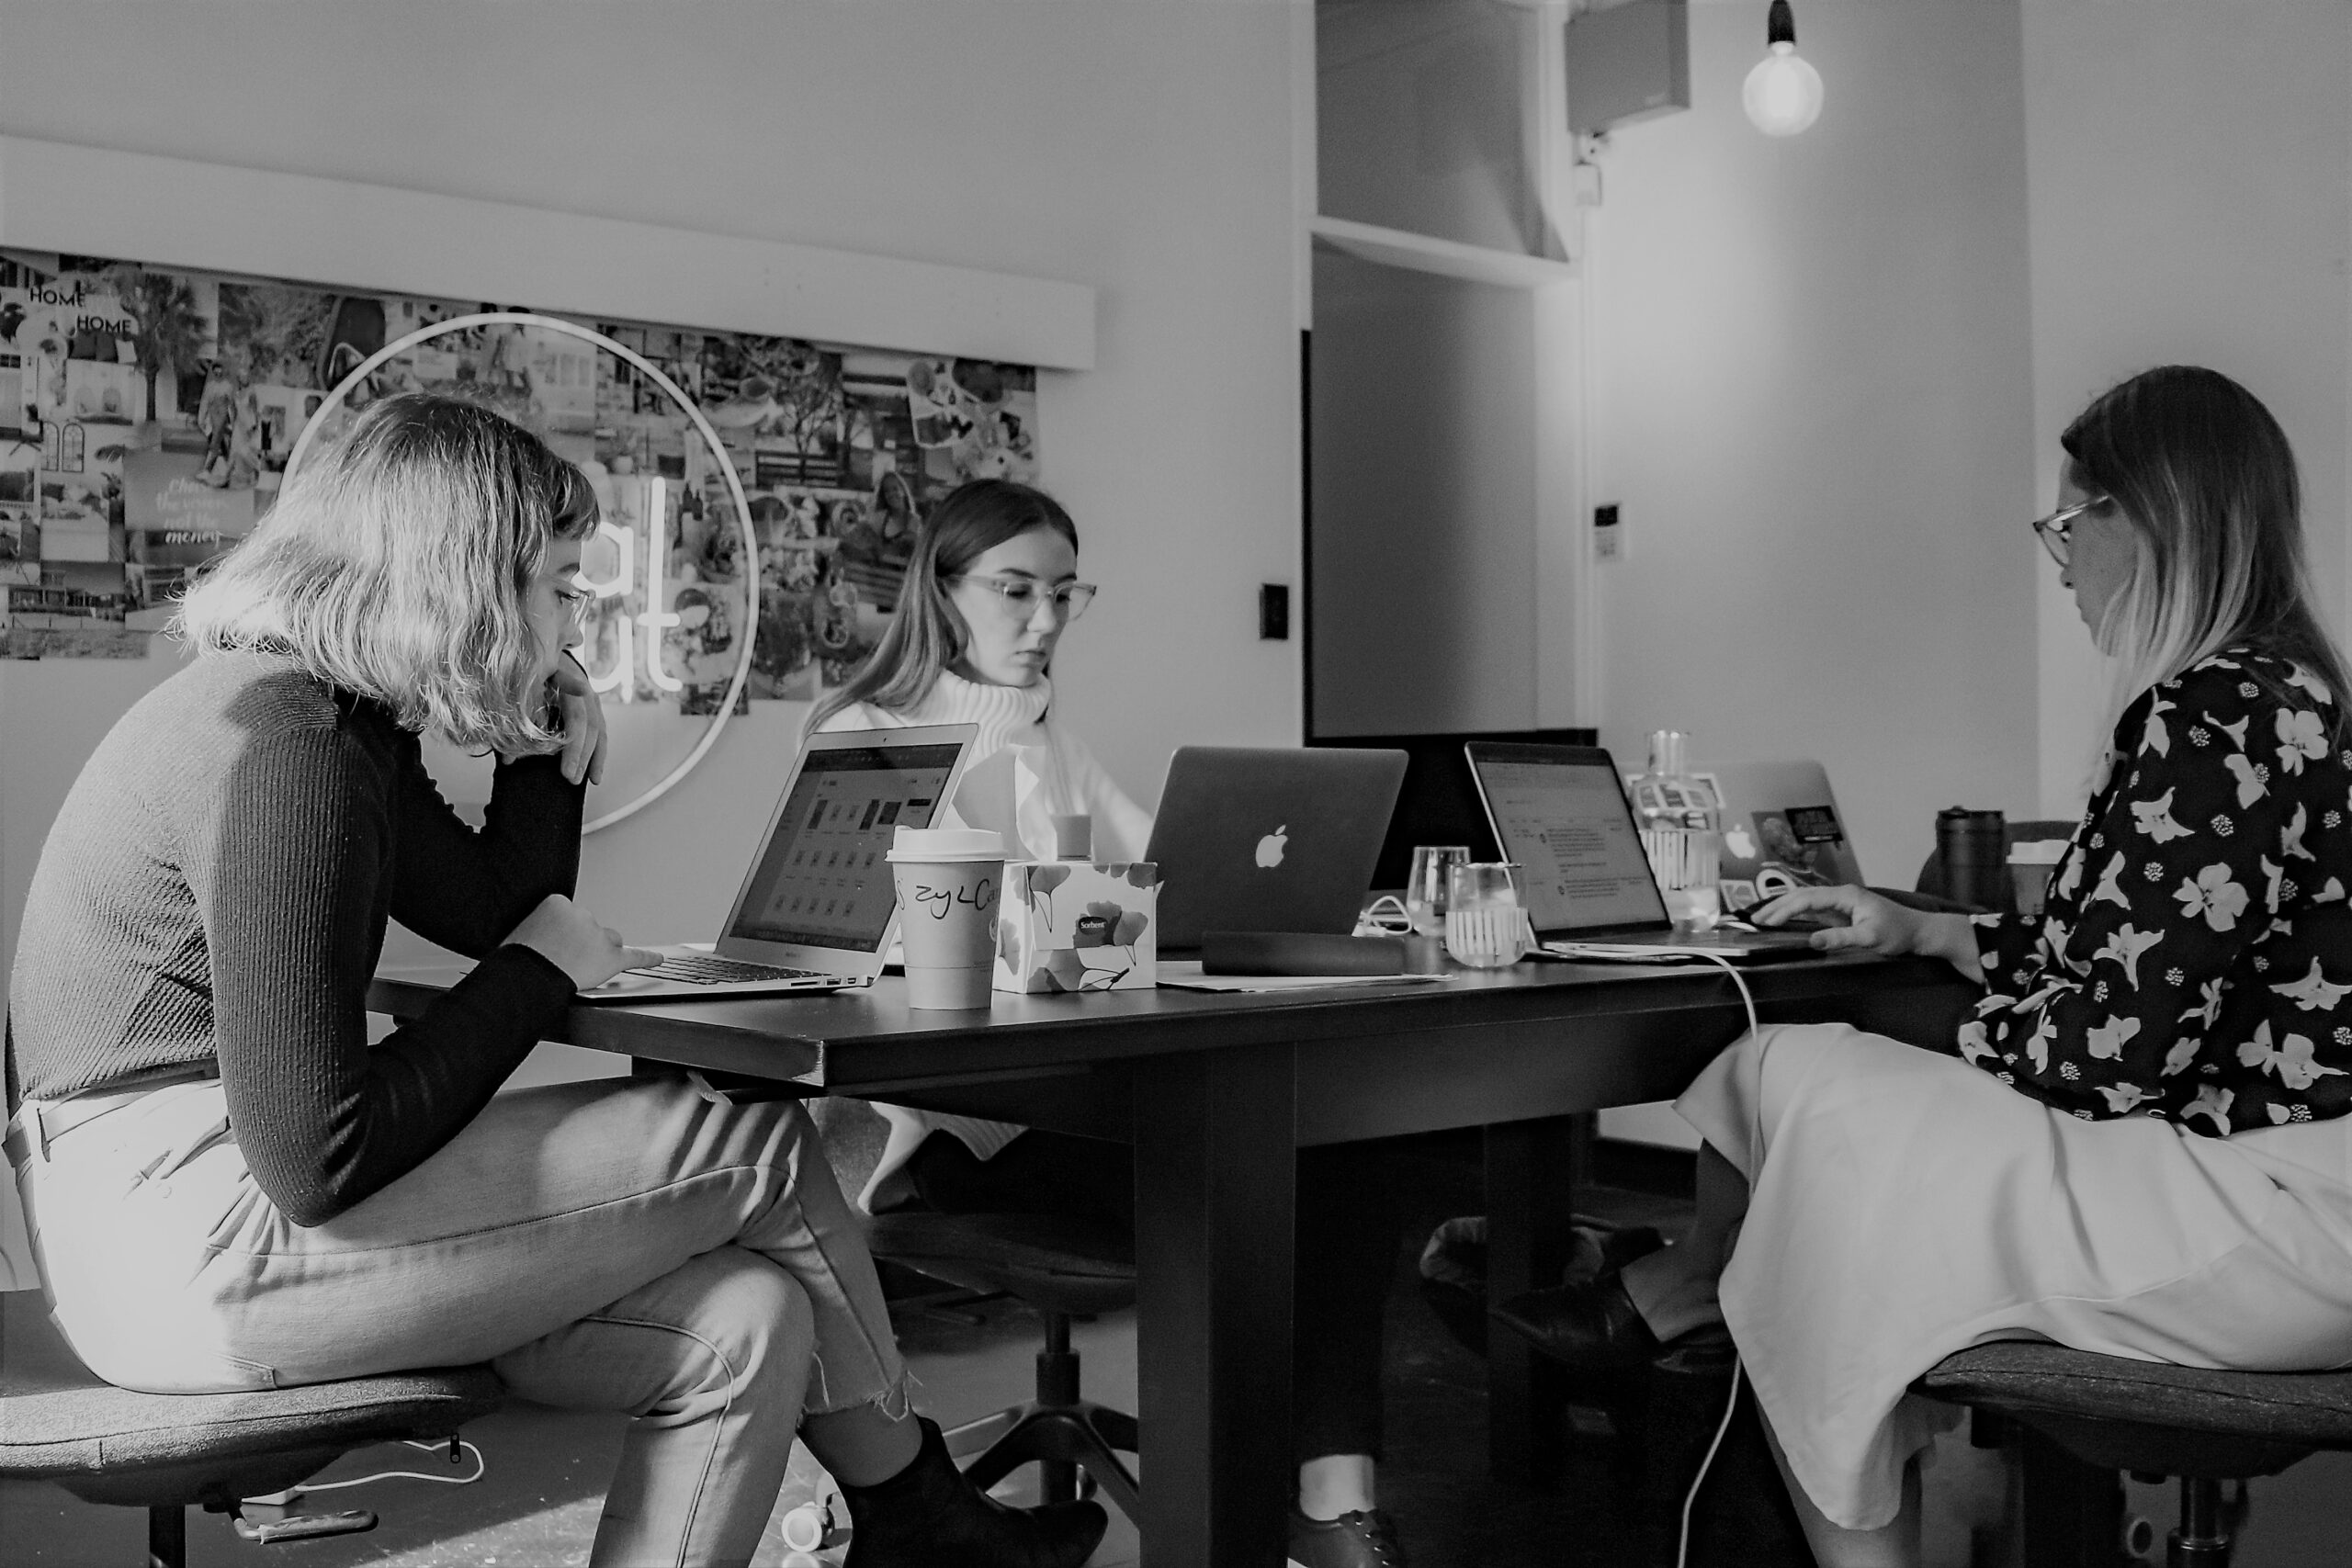 Arbeit in Coworking-Spaces